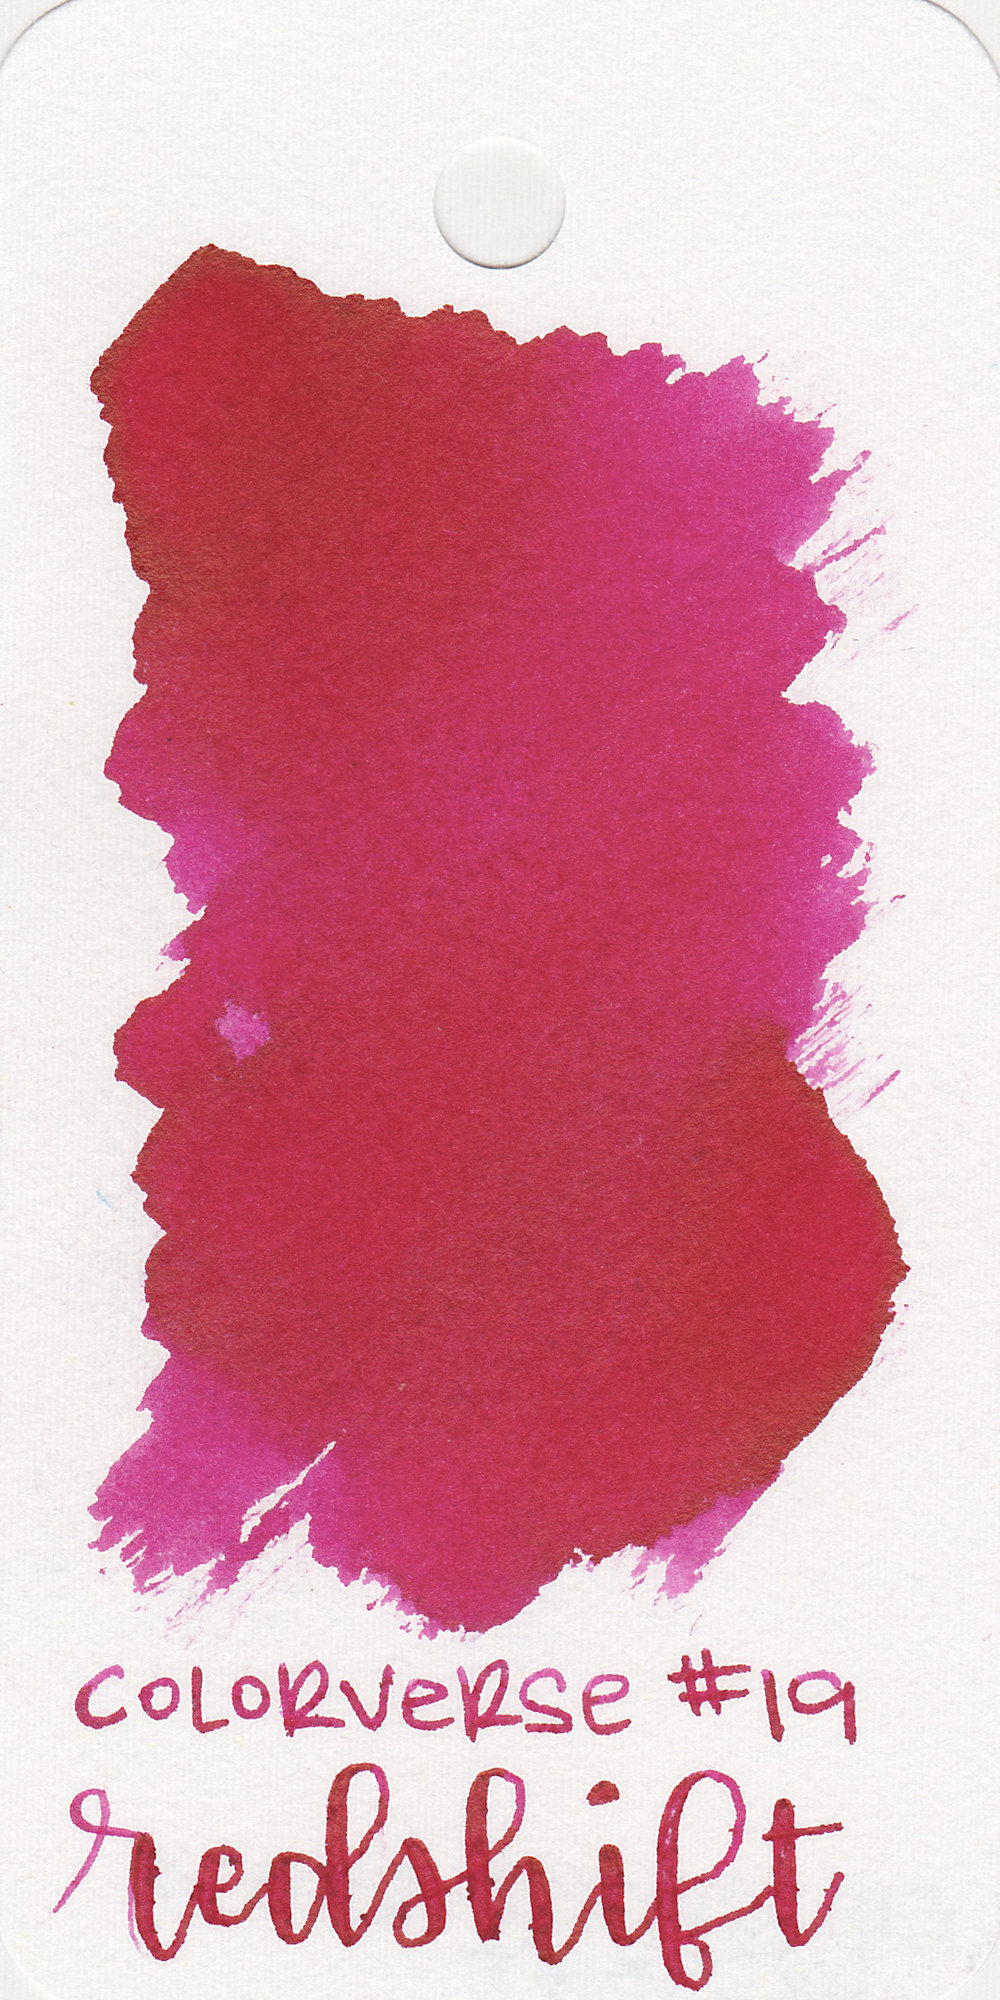 The color: - Redshift is a vibrant dark pink, not red like the name implies.